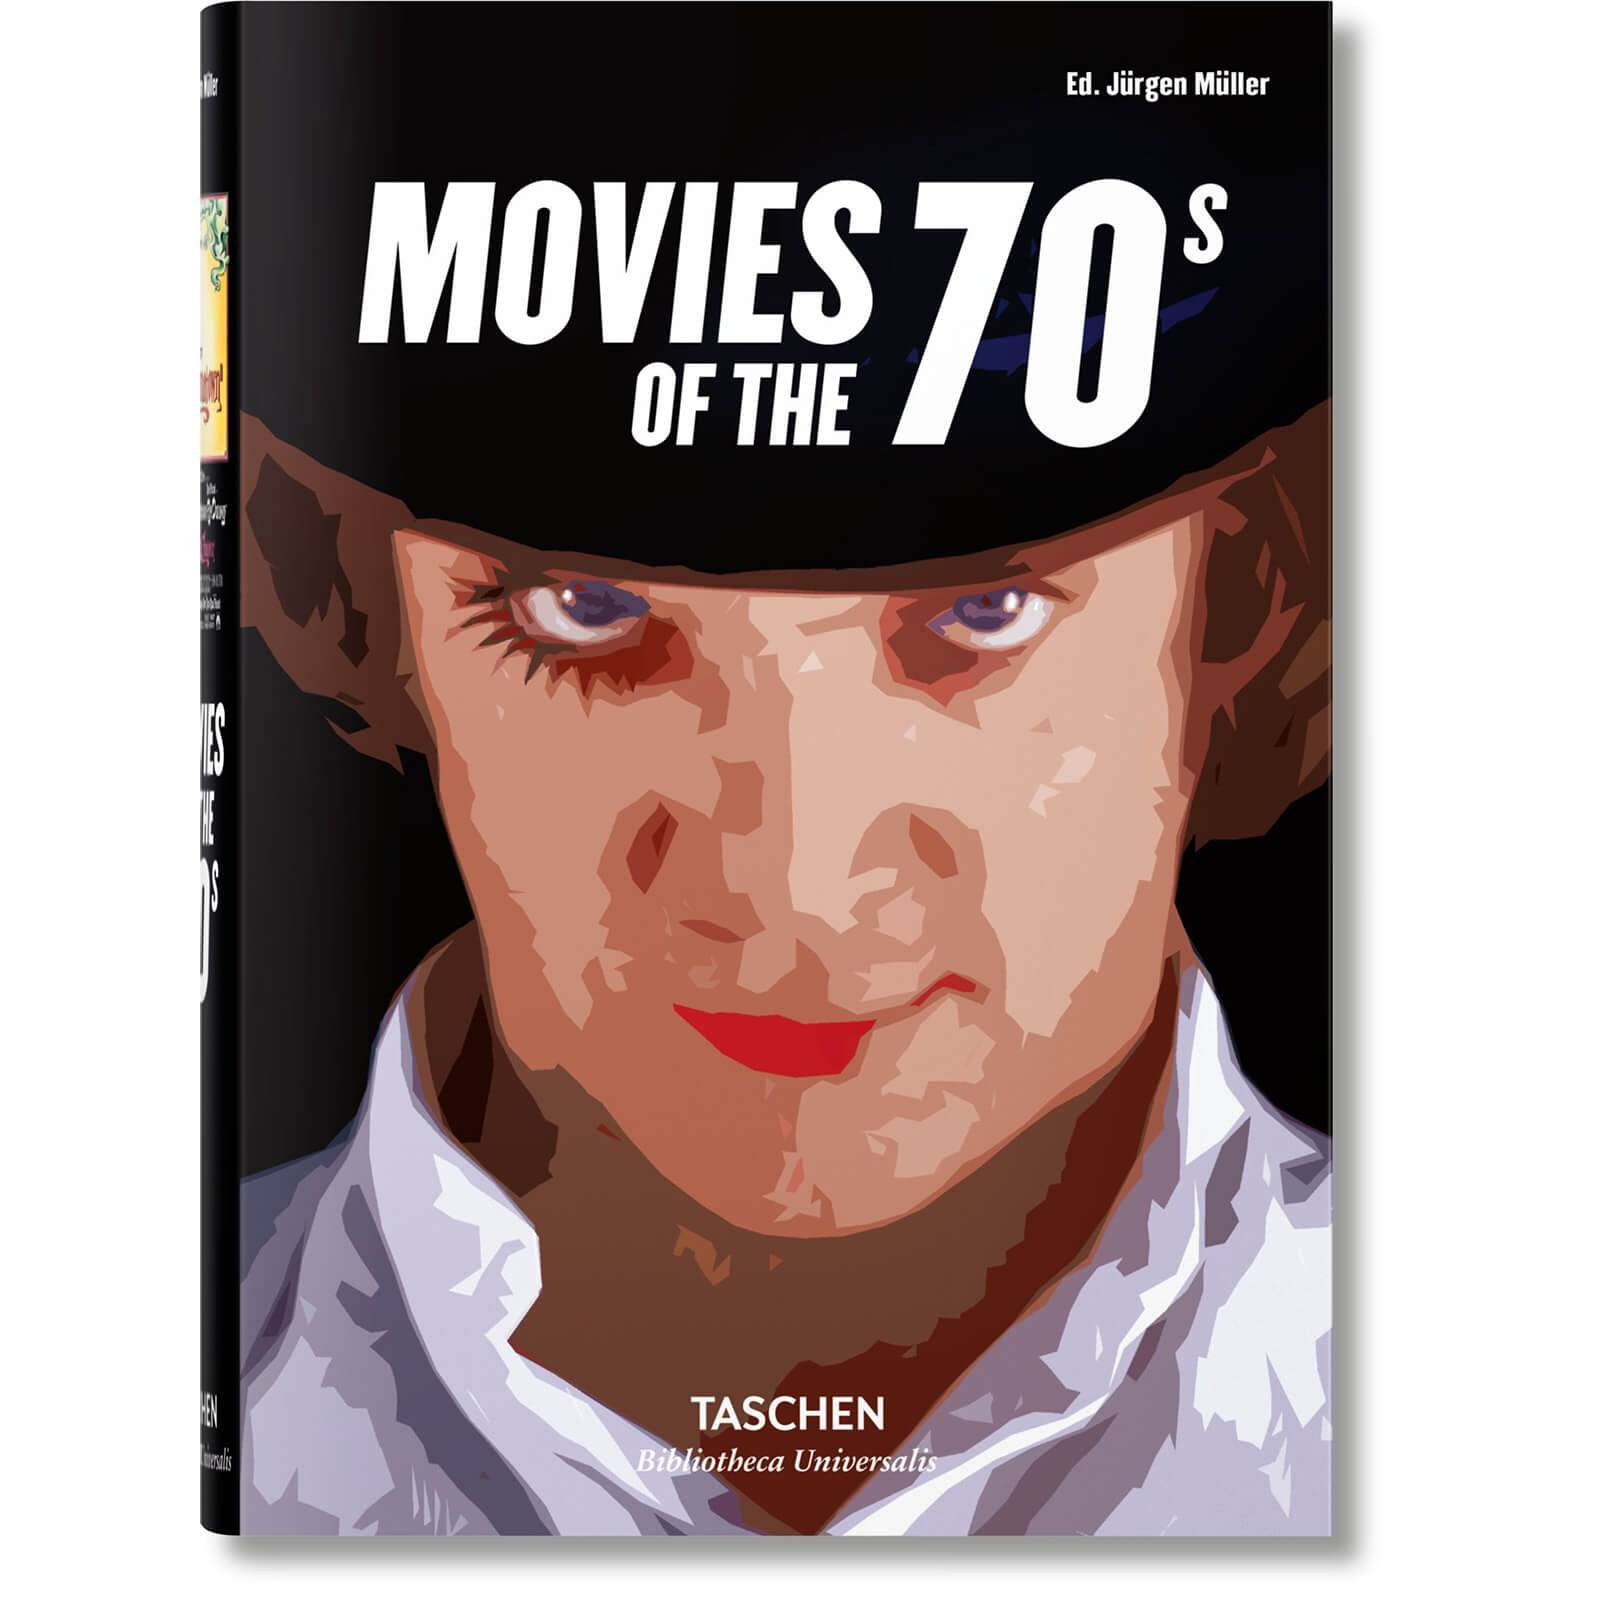 Taschen Movies of the 70s (Hardcover)